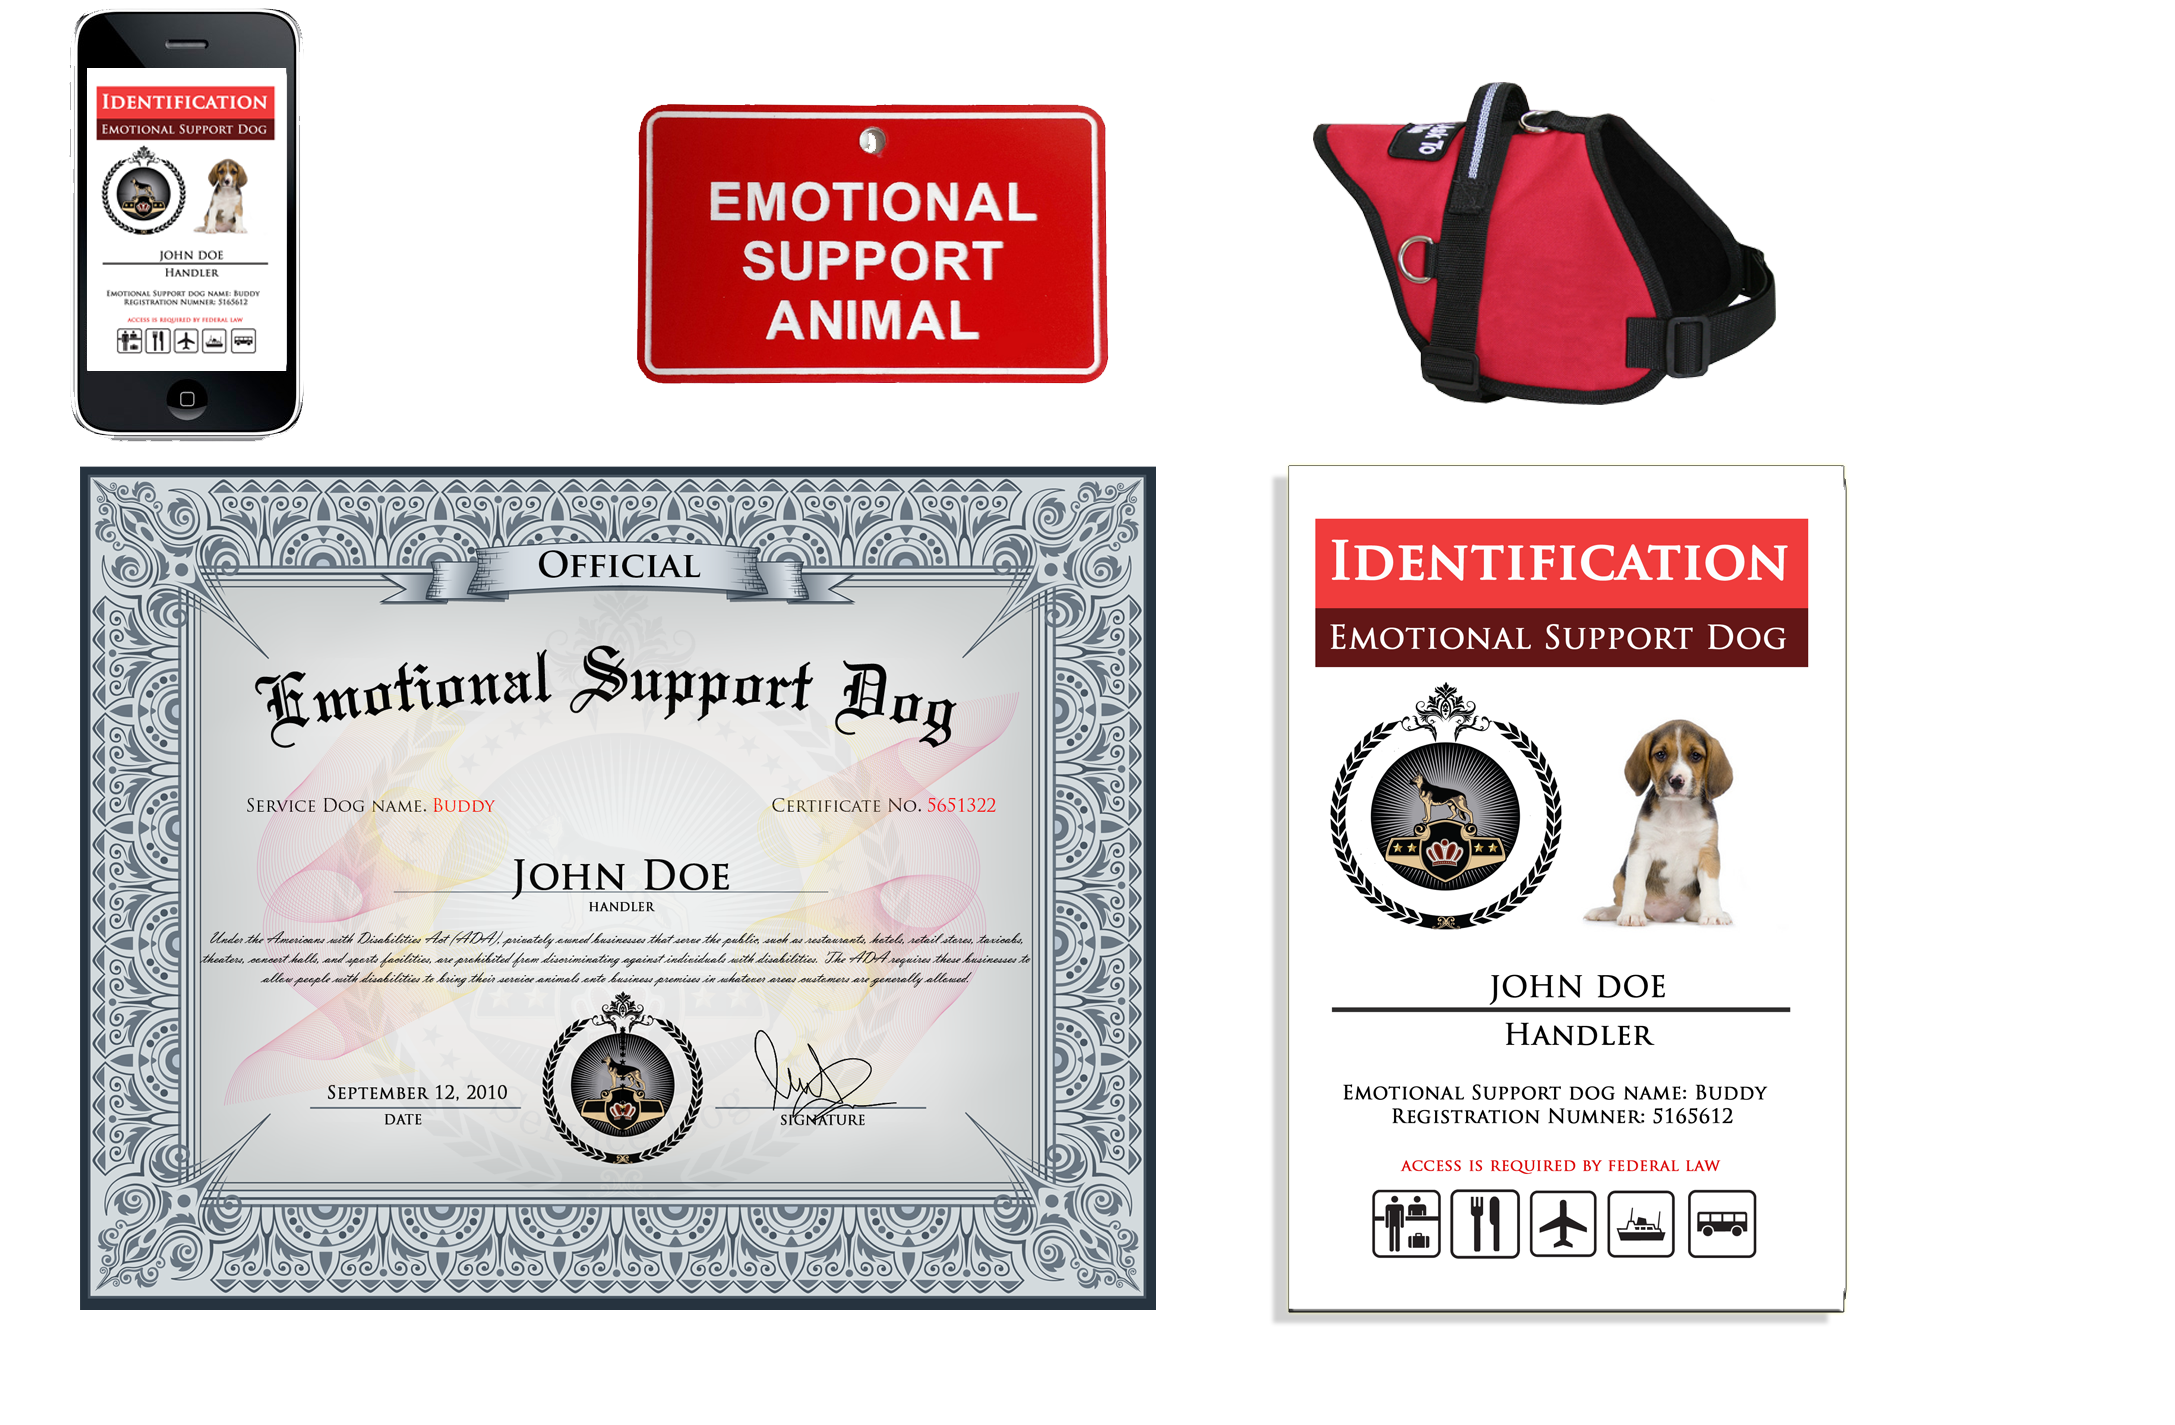 Register your dog as an Emotional Support Dog and the dog